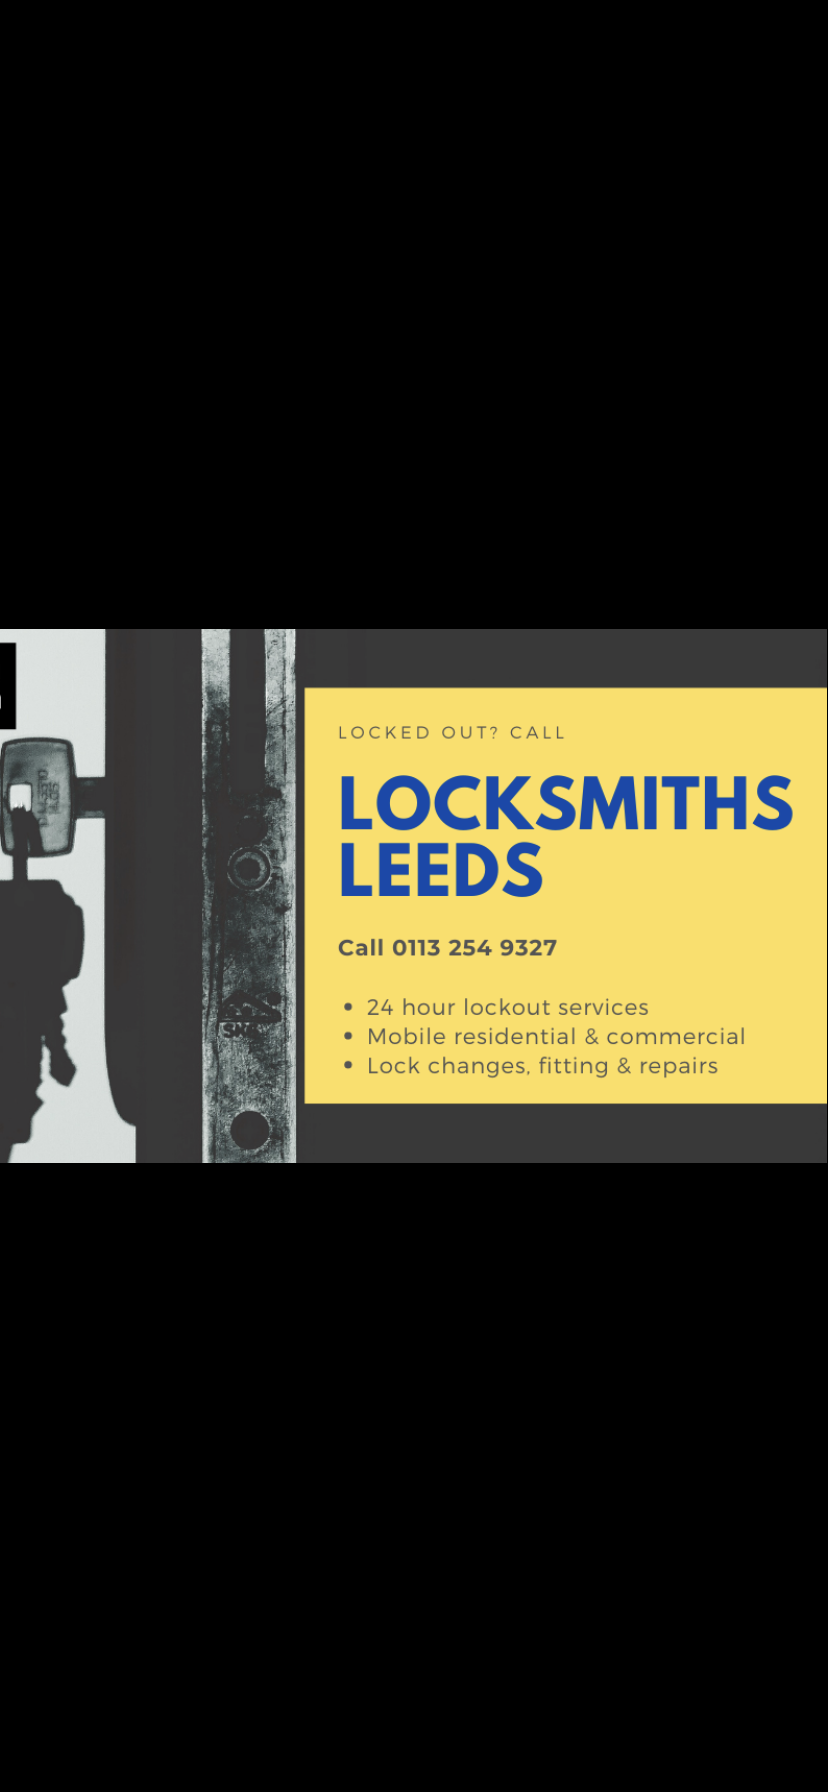 Leeds Locksmiths